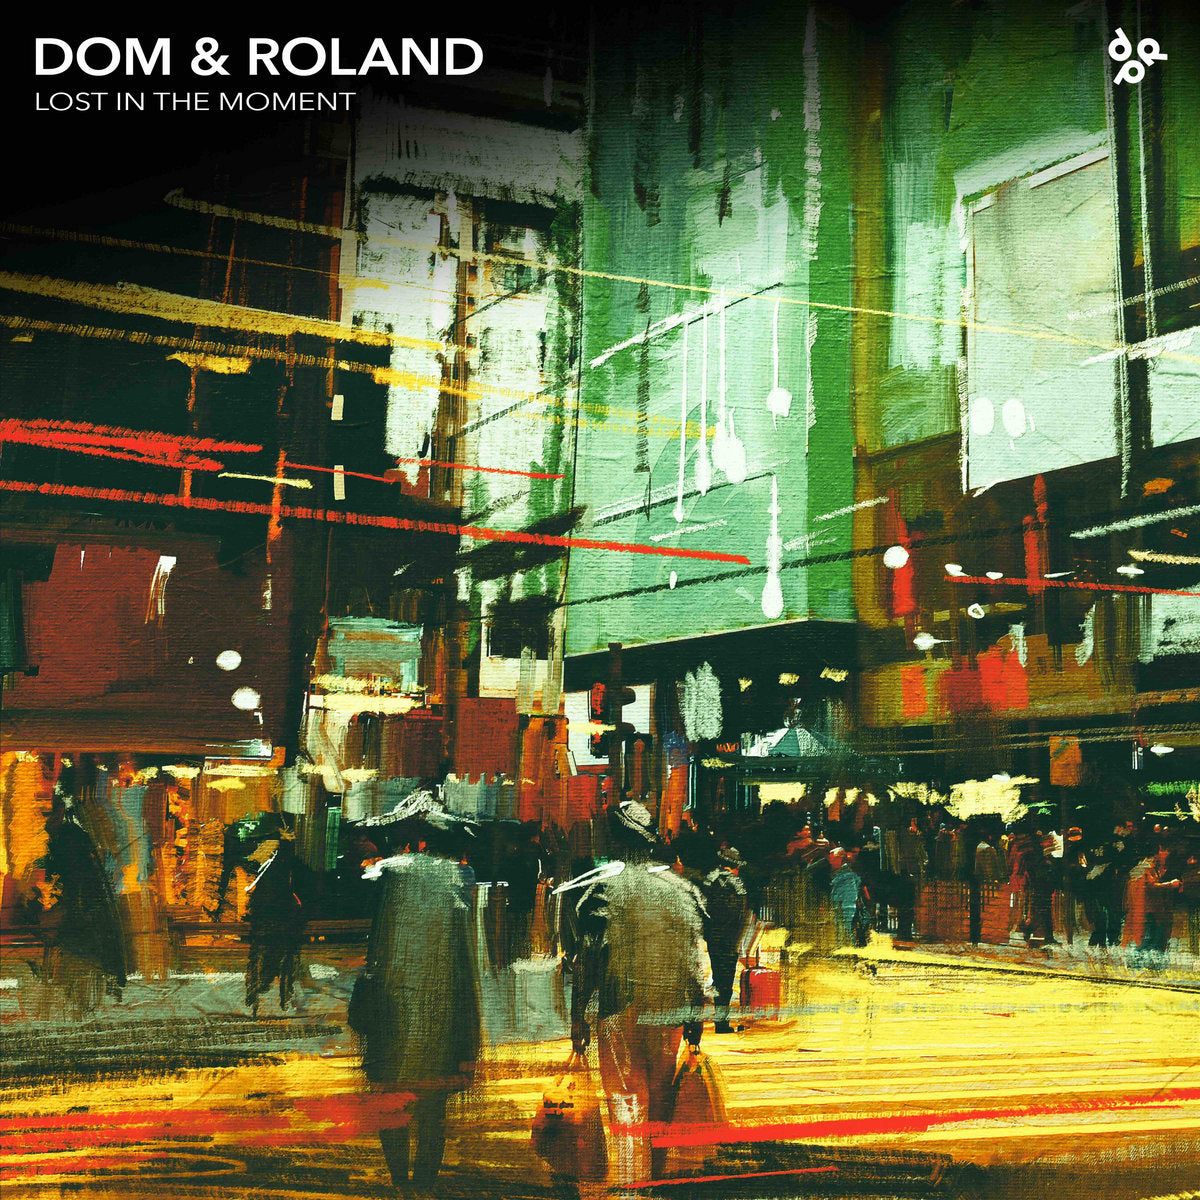 Dom & Roland 'Lost in the Moment' 3LP